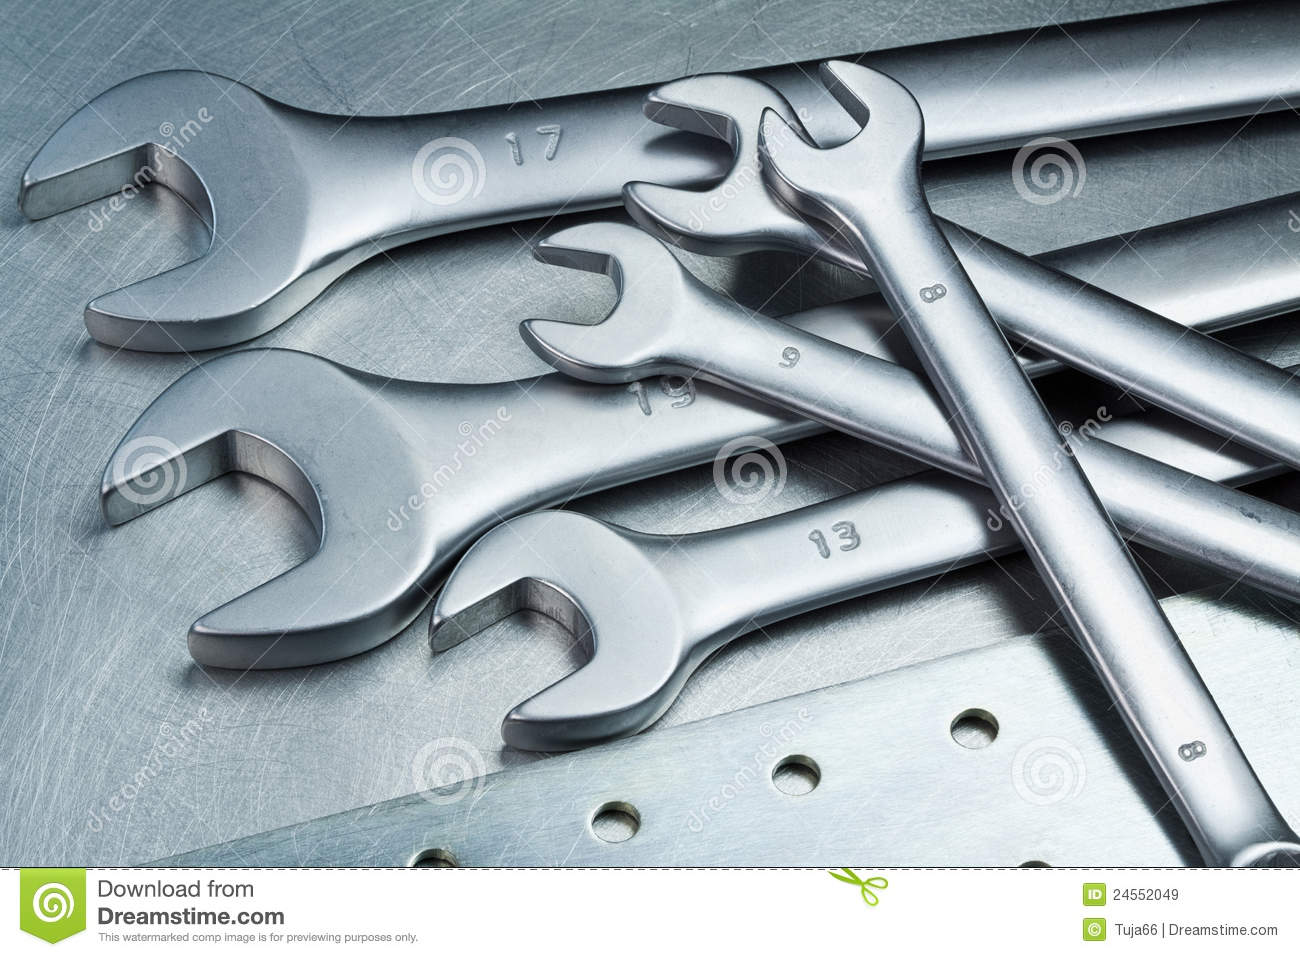 Royalty Free Stock Image Cutlery Spoon Knife Fork Isolated White Image28534766 also Stock Illustration Businessman Use Phone Workplace Top Above View Desk Vector Illustration Image50433647 further Stock Photo Personage Robot L  Hold Plug Concept Image34955320 additionally Royalty Free Stock Images Metal Tools Image24552049 likewise Wheelchair. on table audio equipment